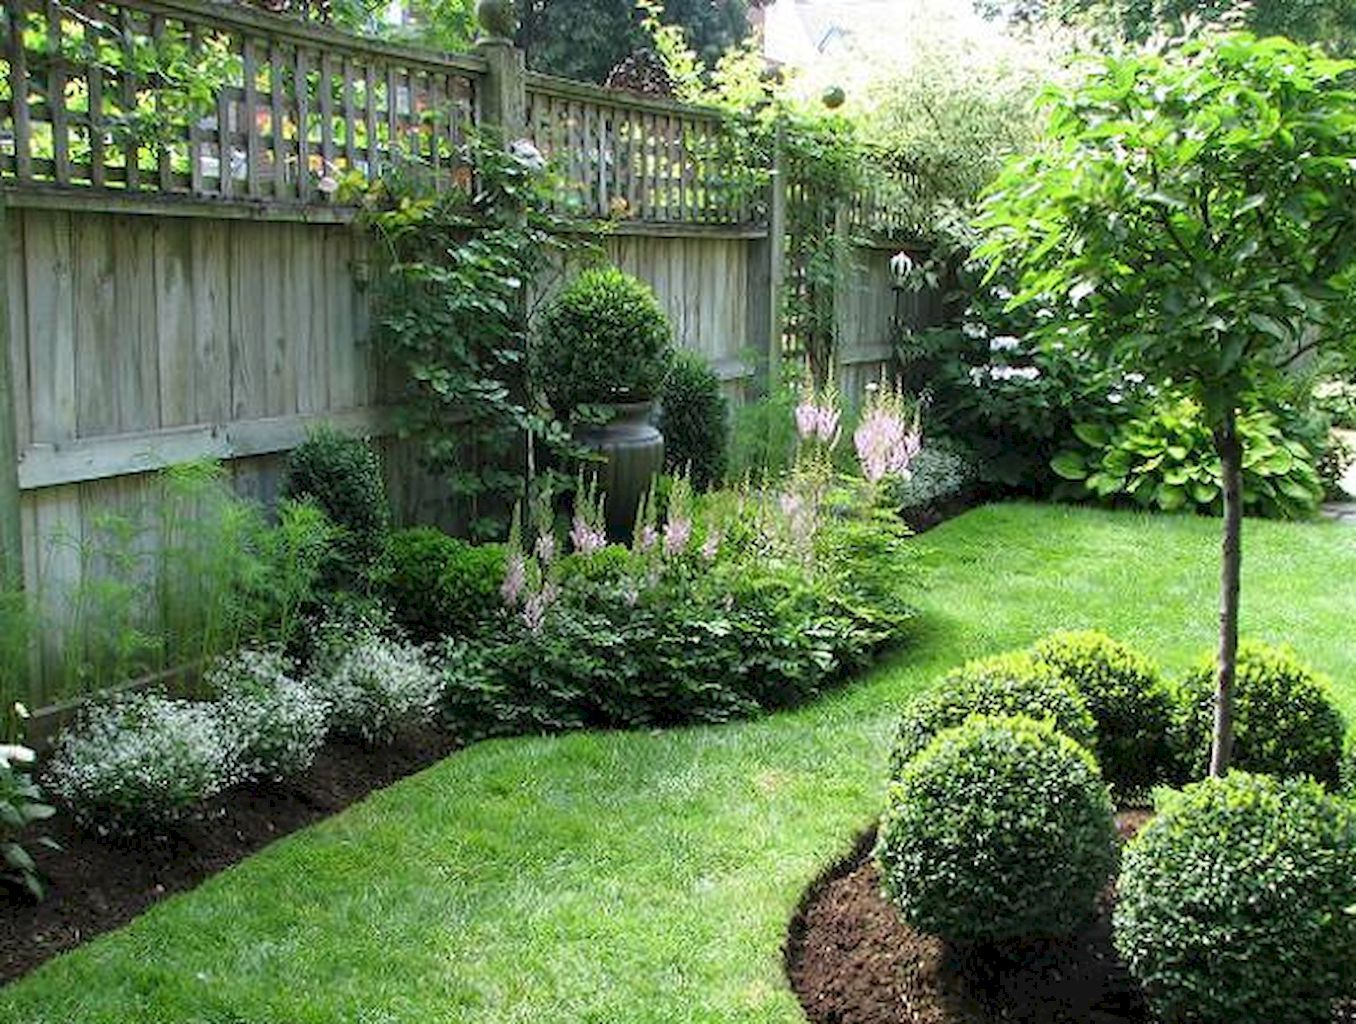 Pin Ardelle Gotcher On Decor Outdoor Backyard Landscaping with regard to 13 Smart Initiatives of How to Make Backyard Landscape Design Ideas On A Budget